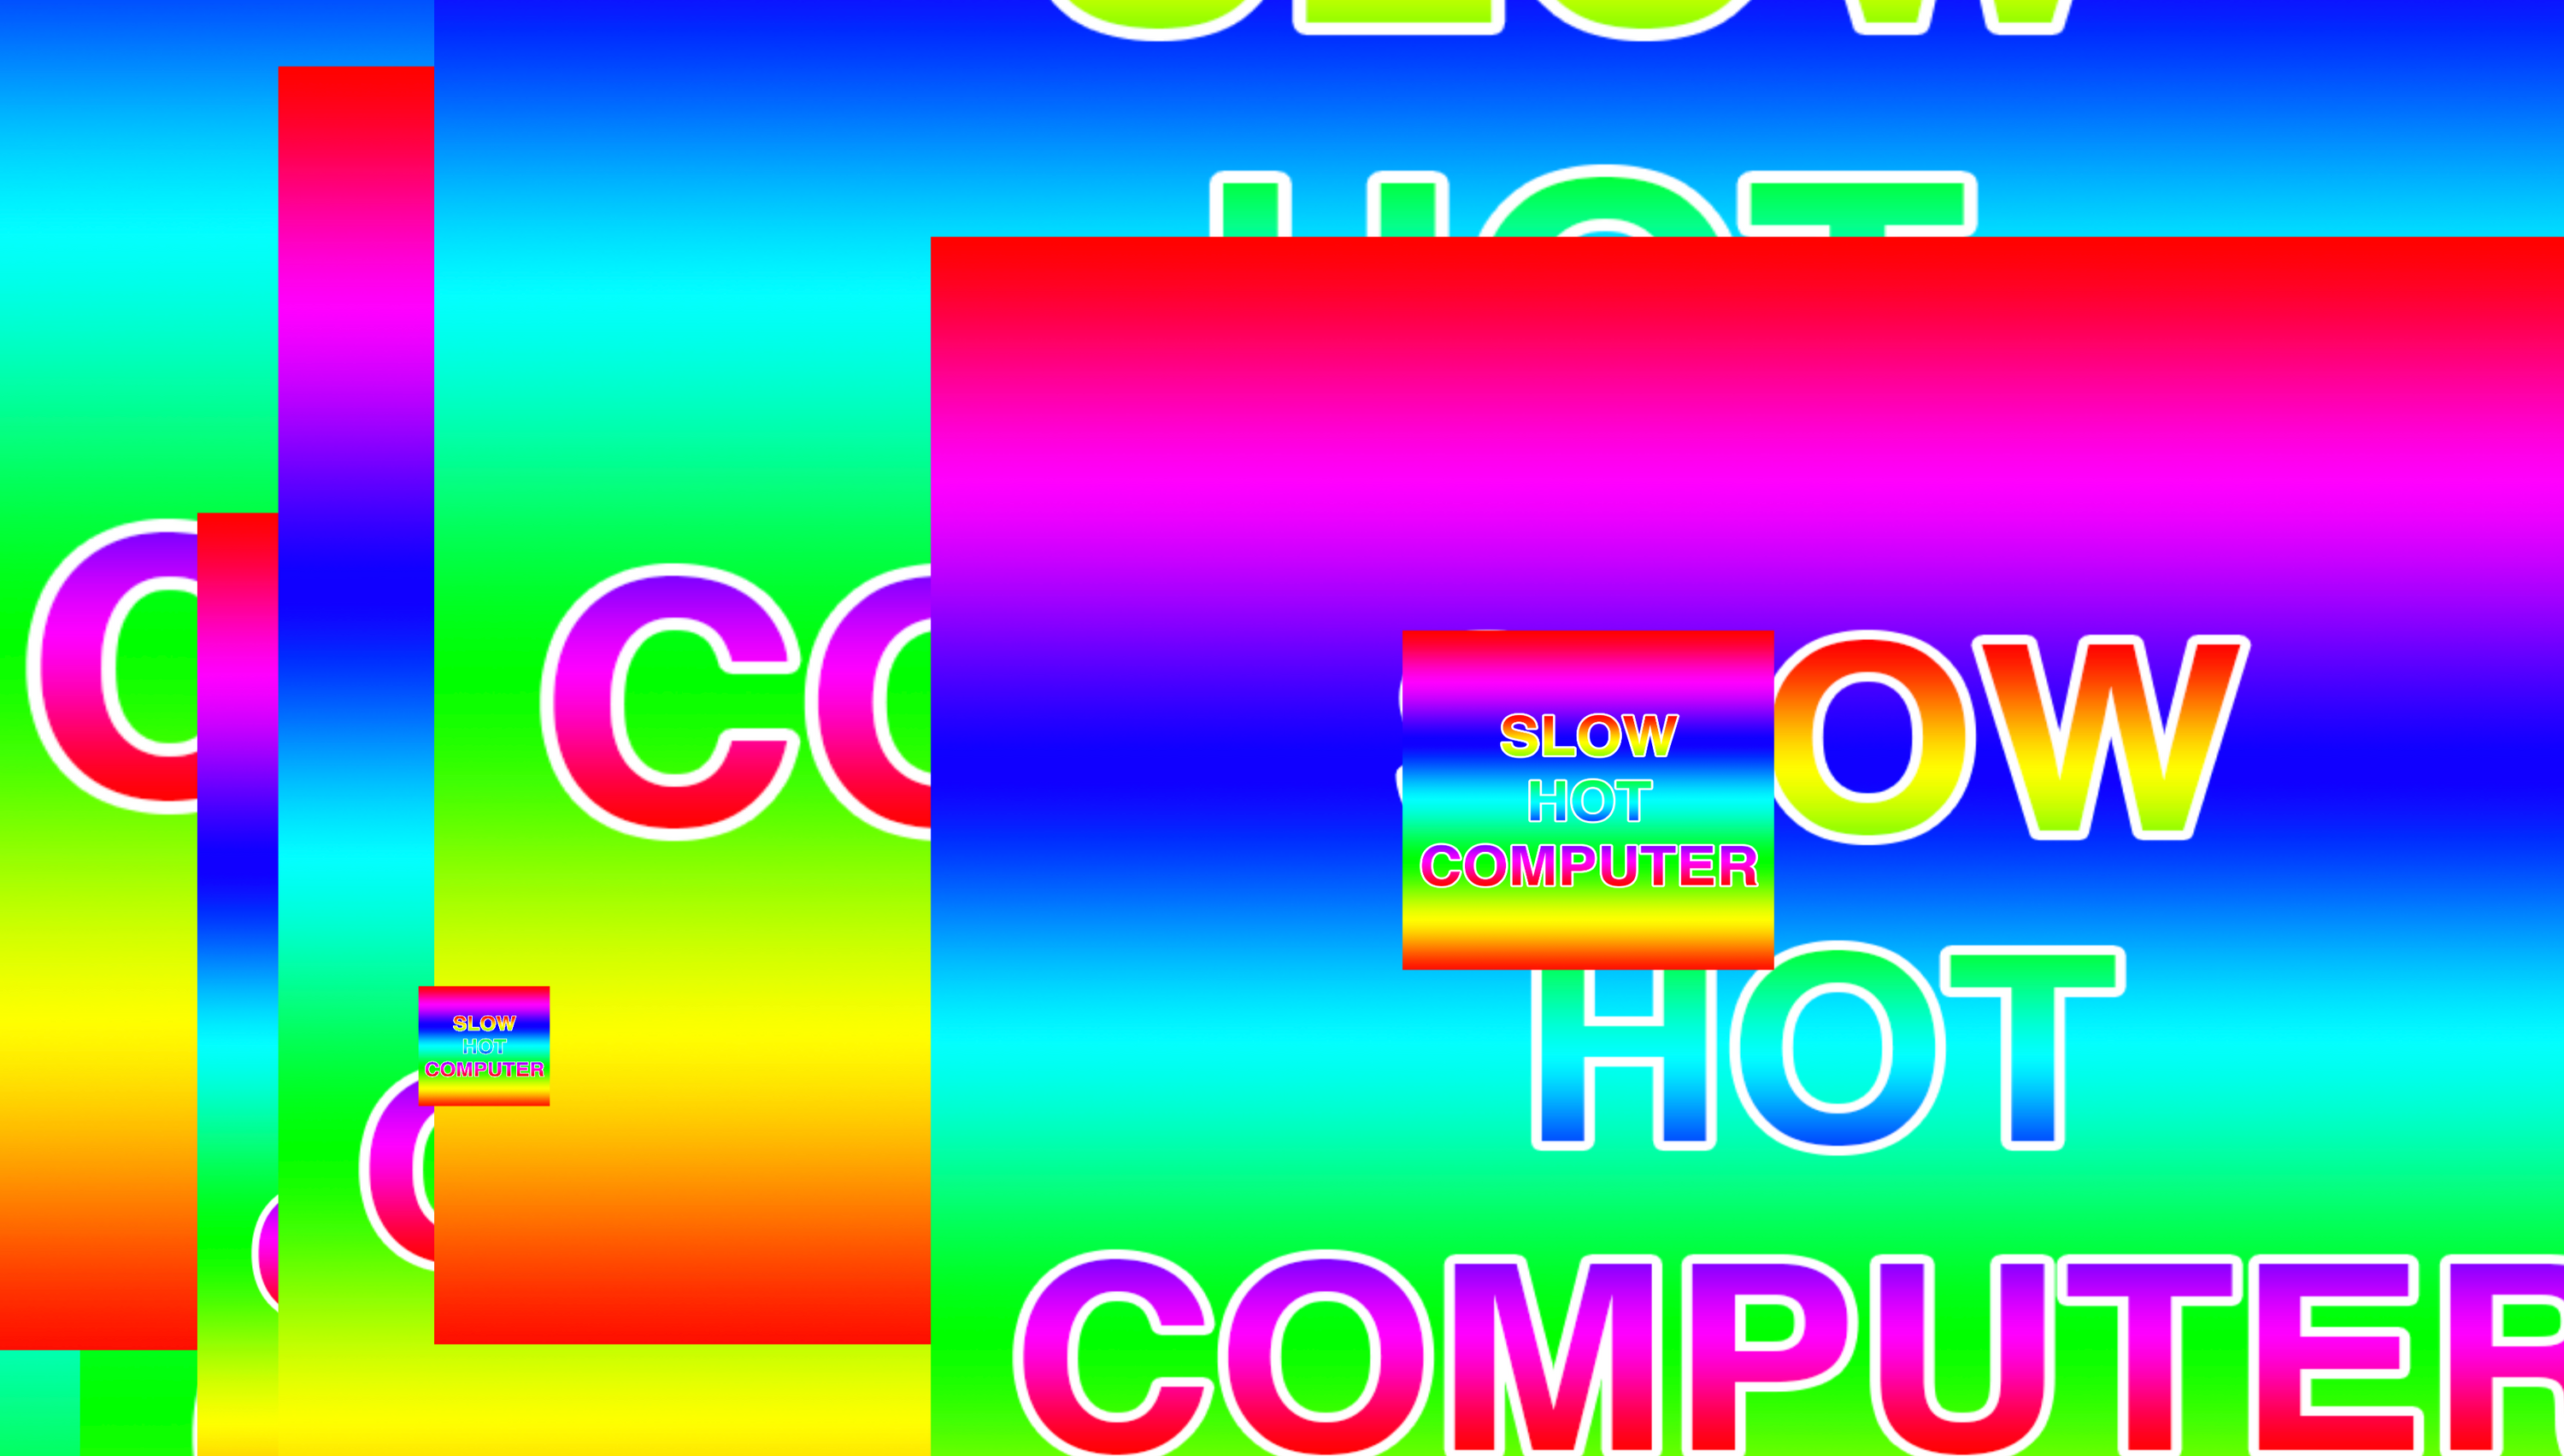 """Image shows a lot of overlapping rainbow rectangles with the text """"slow hot computer"""" in all caps written on the front-most rectangle."""